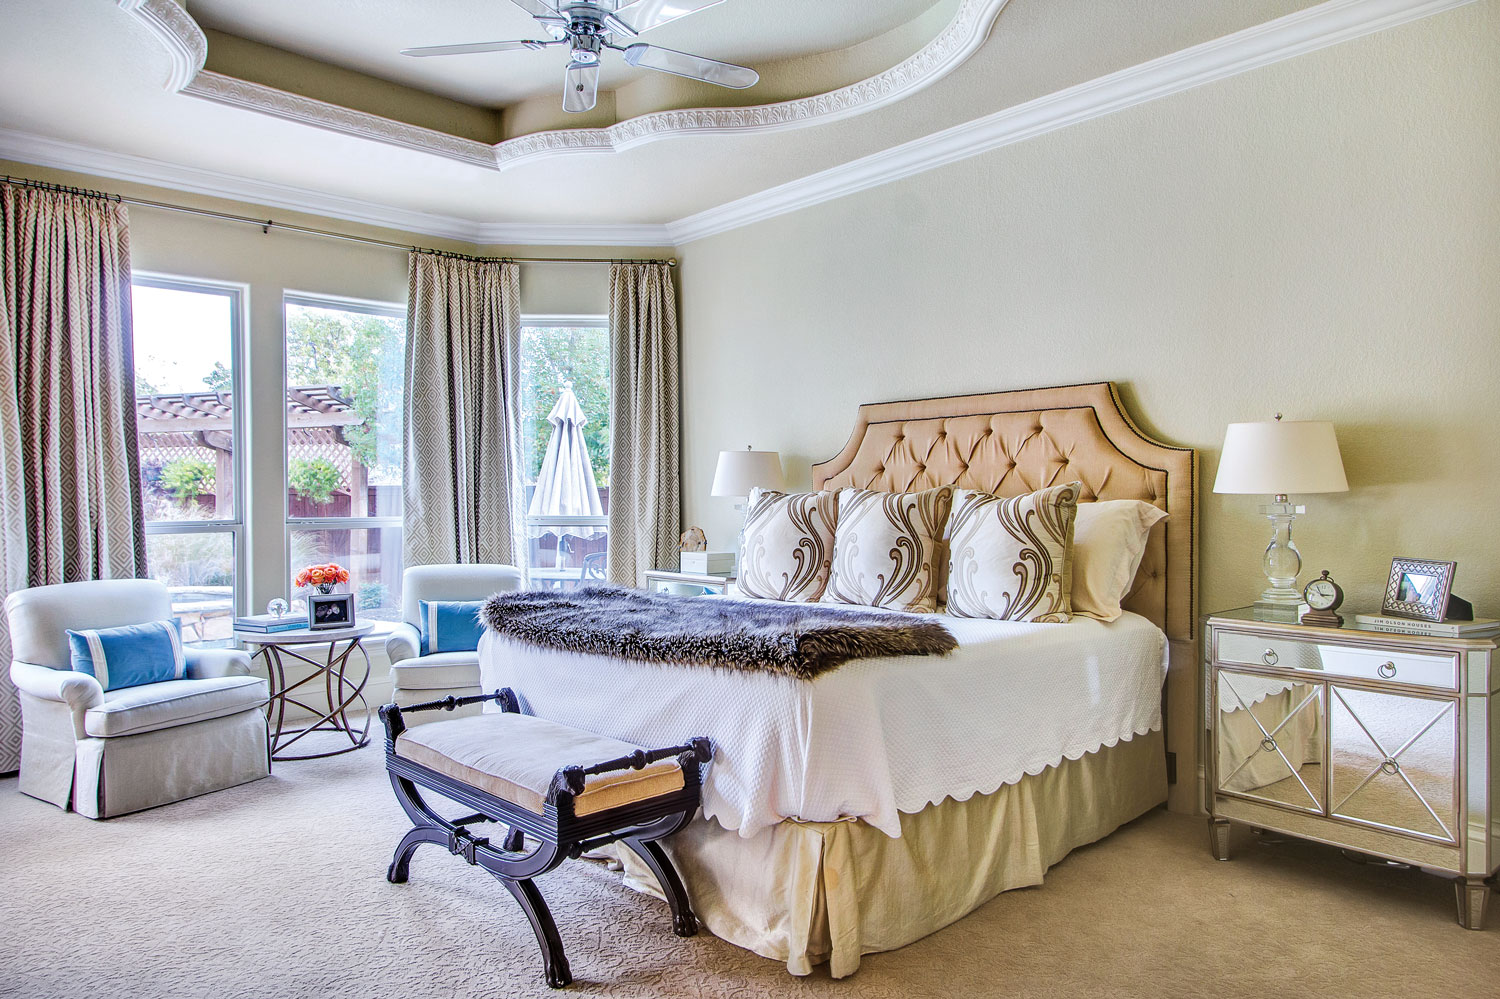 A photo of a bedroom with neutral and blue decor